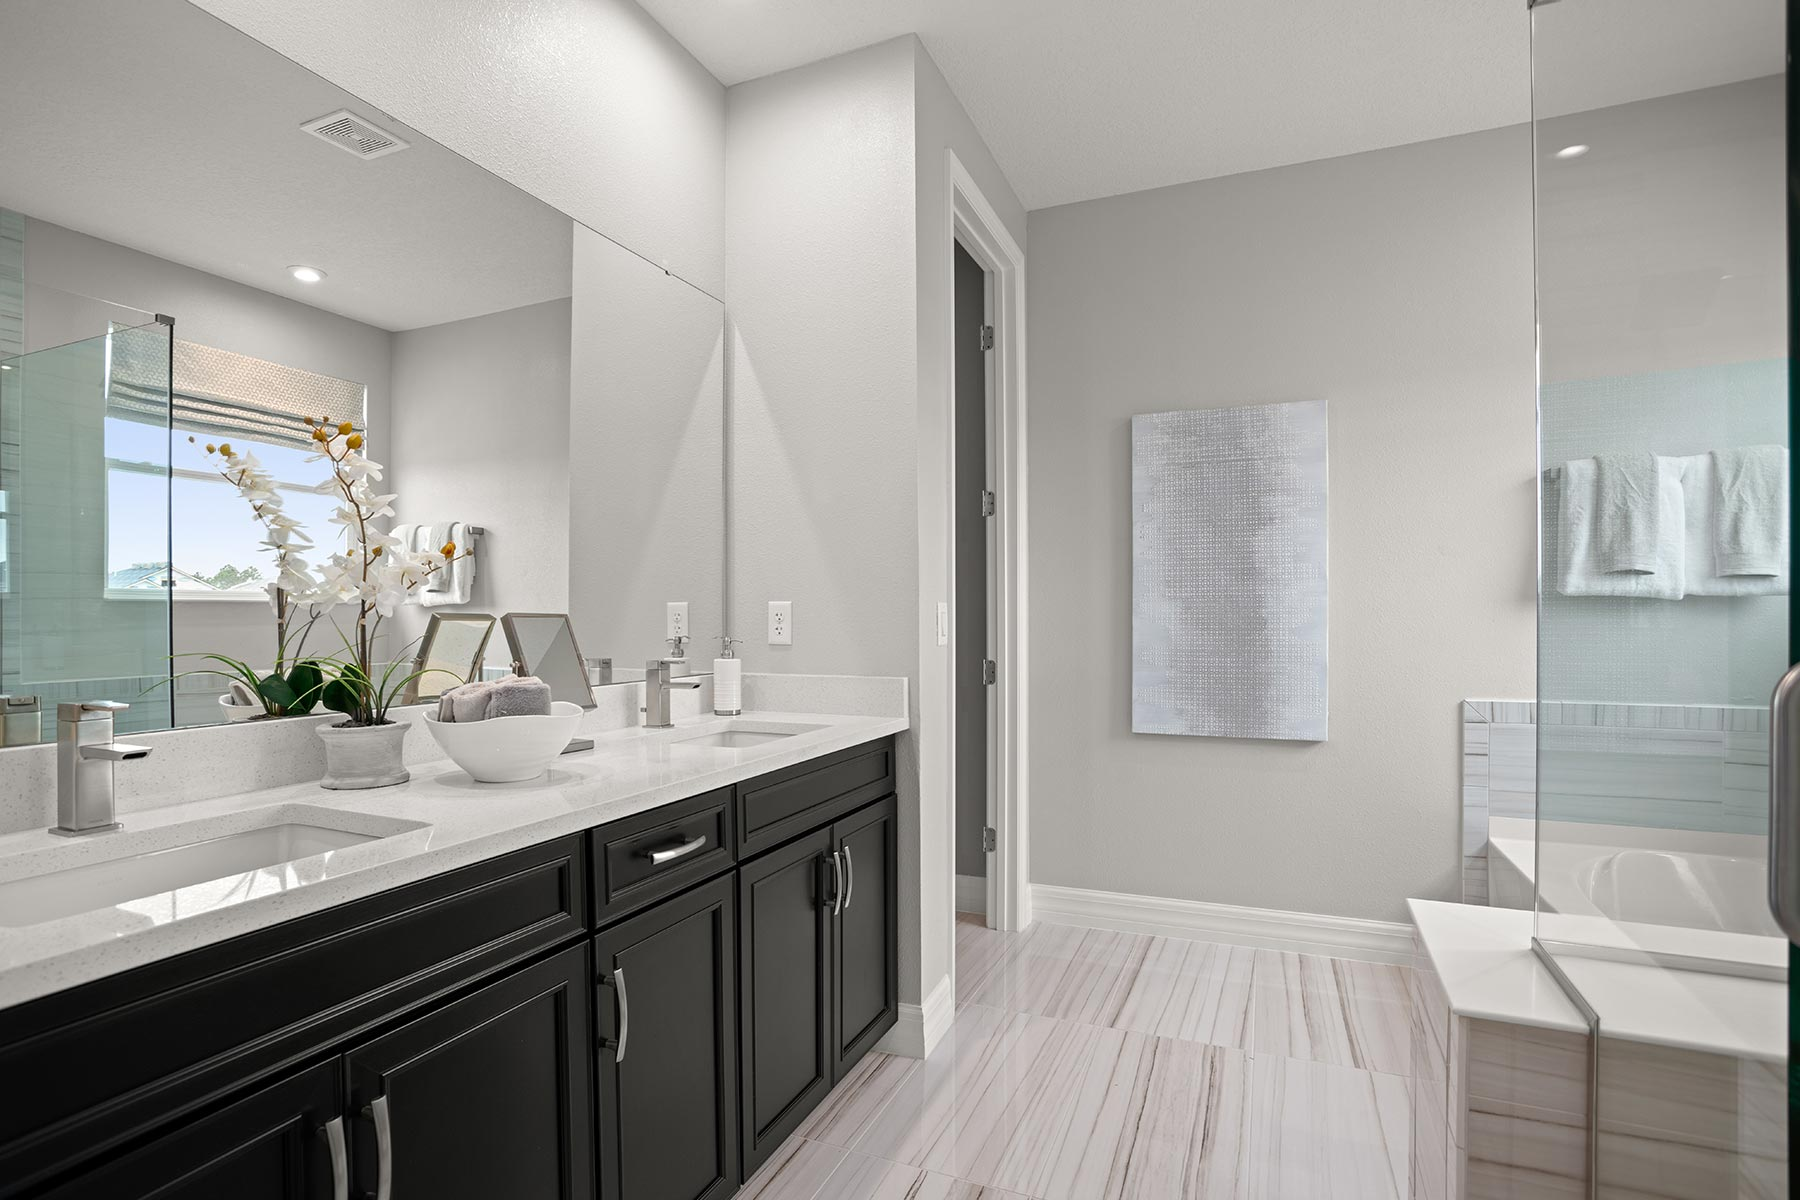 Winthrop Plan Bathroom_Master Bath at Tapestry in Kissimmee Florida by Mattamy Homes